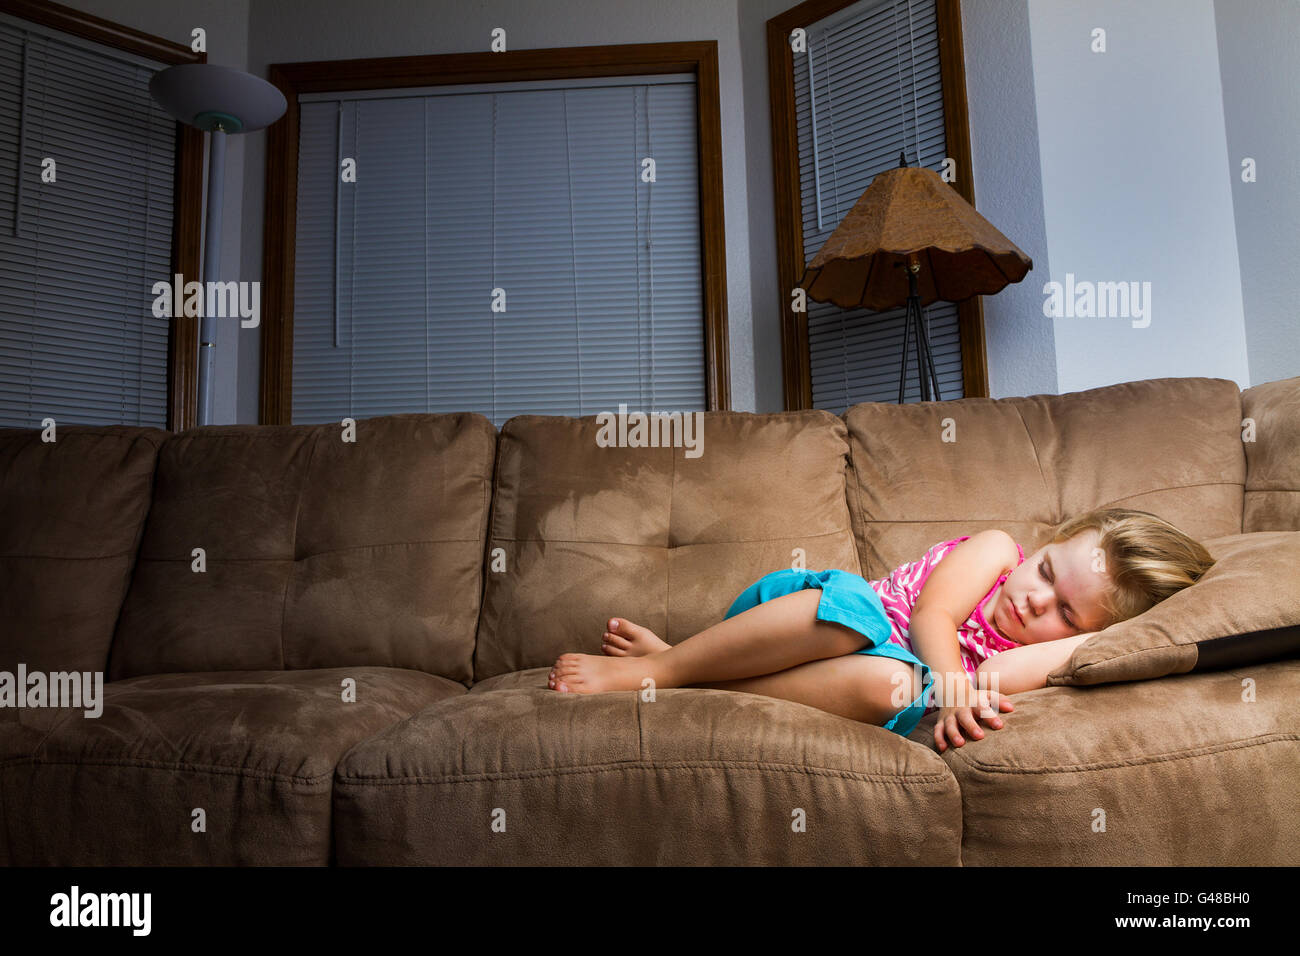 Child on couch curled up into a little ball at night. Nice warm light is on child that falls off as it moves away - Stock Image